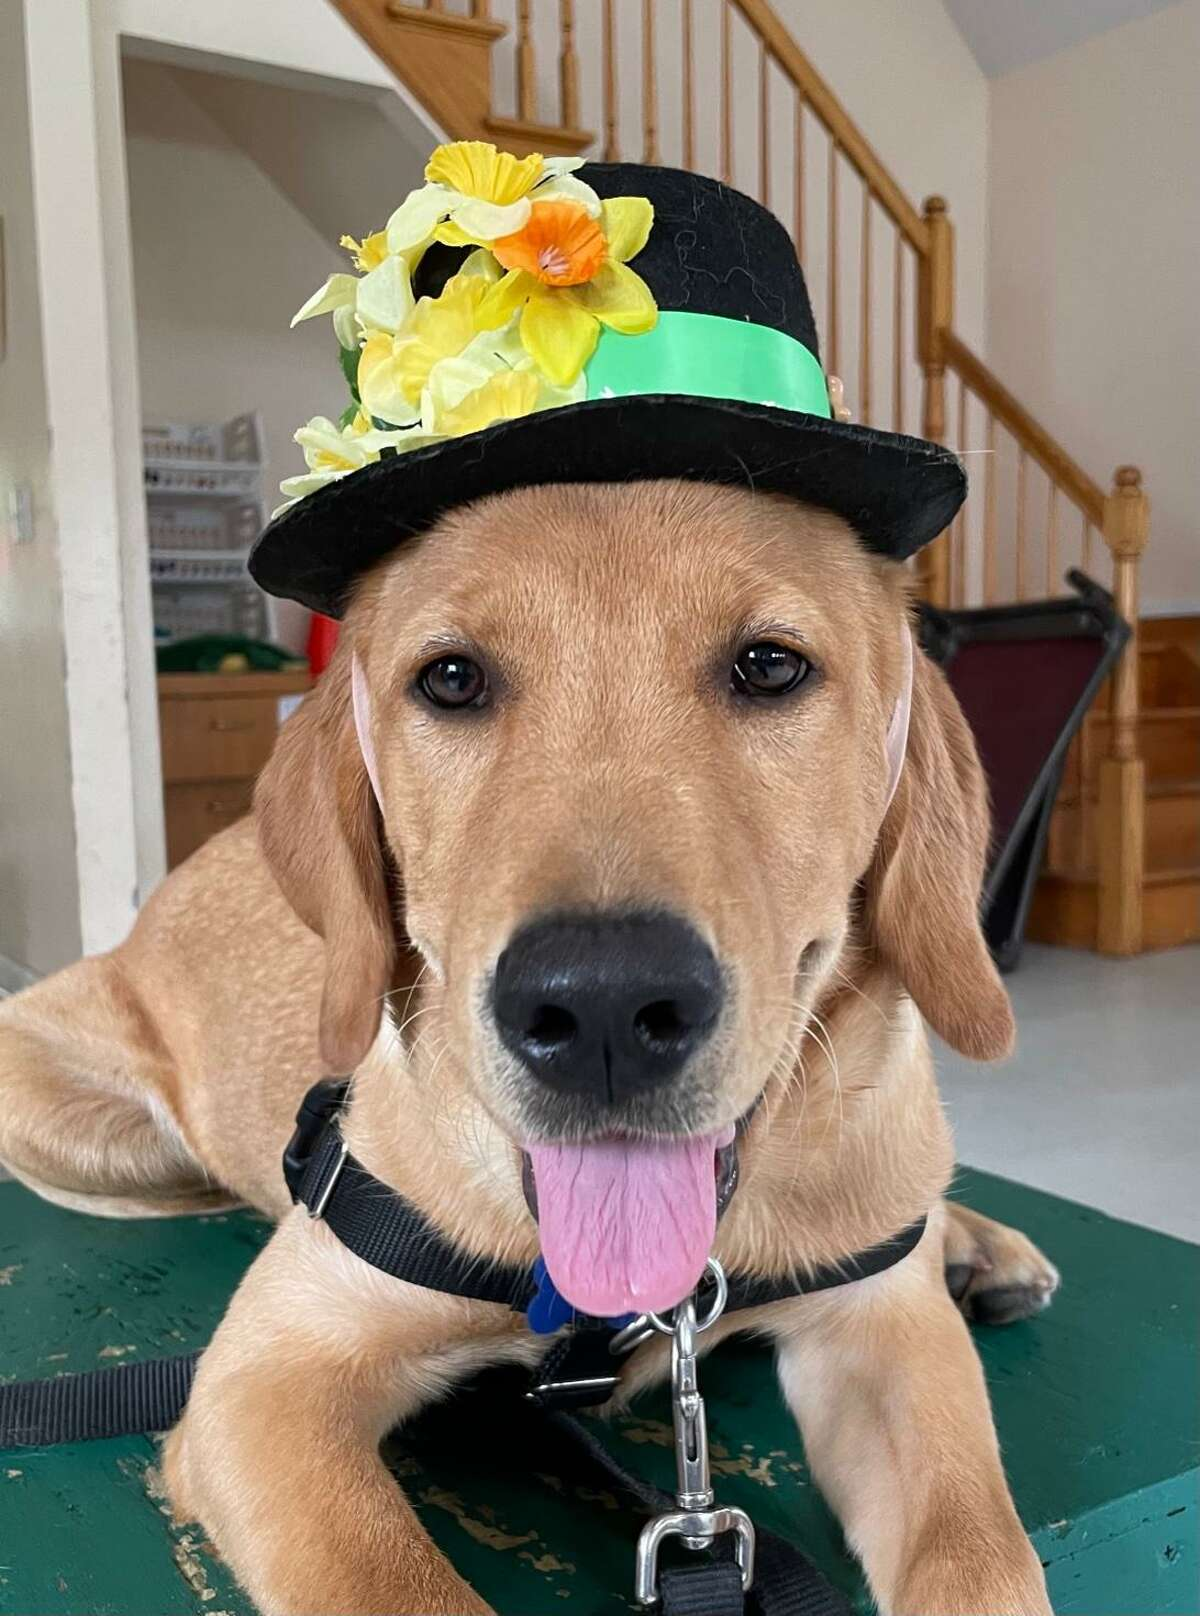 ECAD is holding an open house Oct. 3, where service dogs like Happy will waiting to greet visitors.